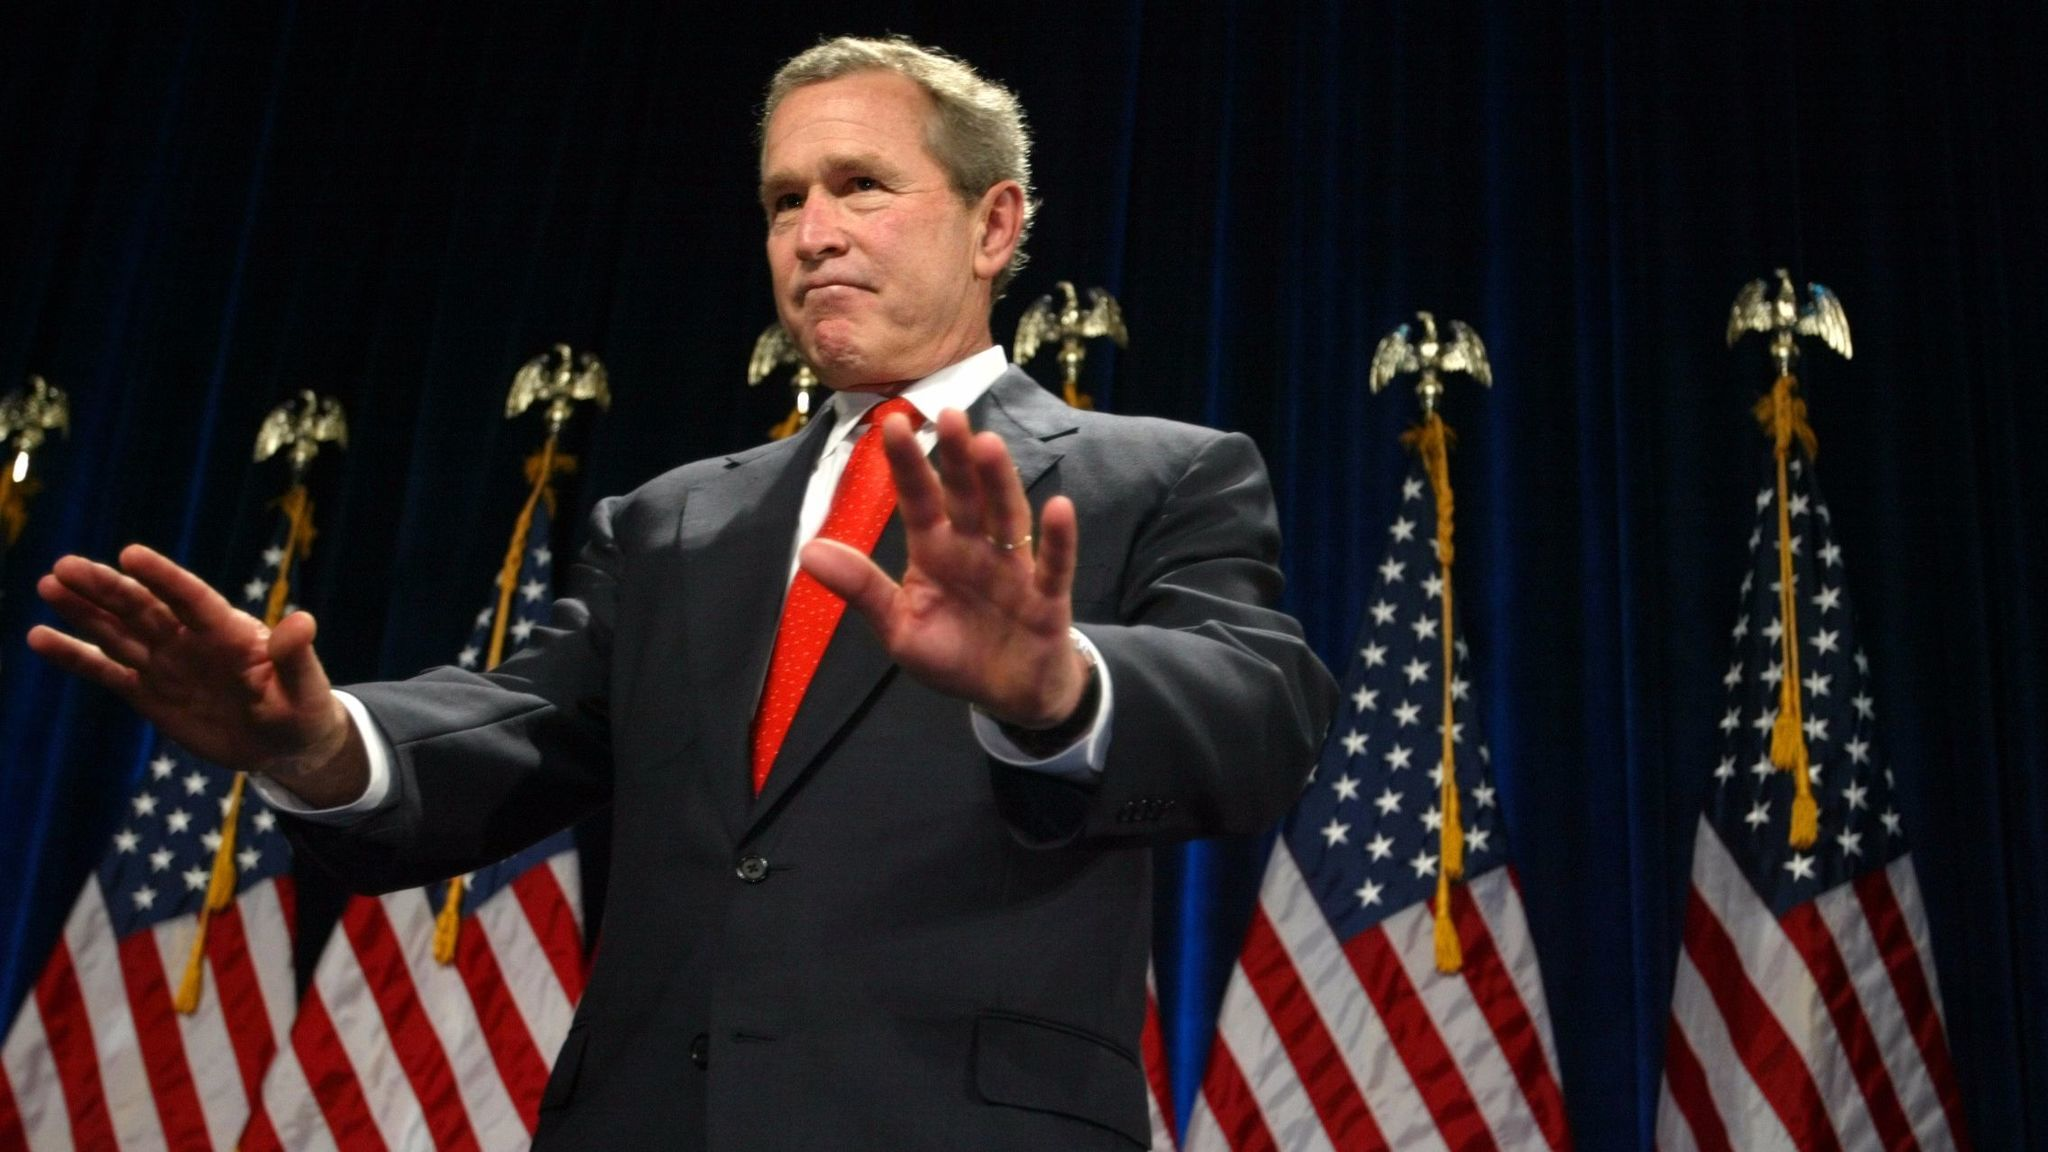 Then-President George W. Bush addresses supporters at a 2004 campaign fundraising dinner in Washington.